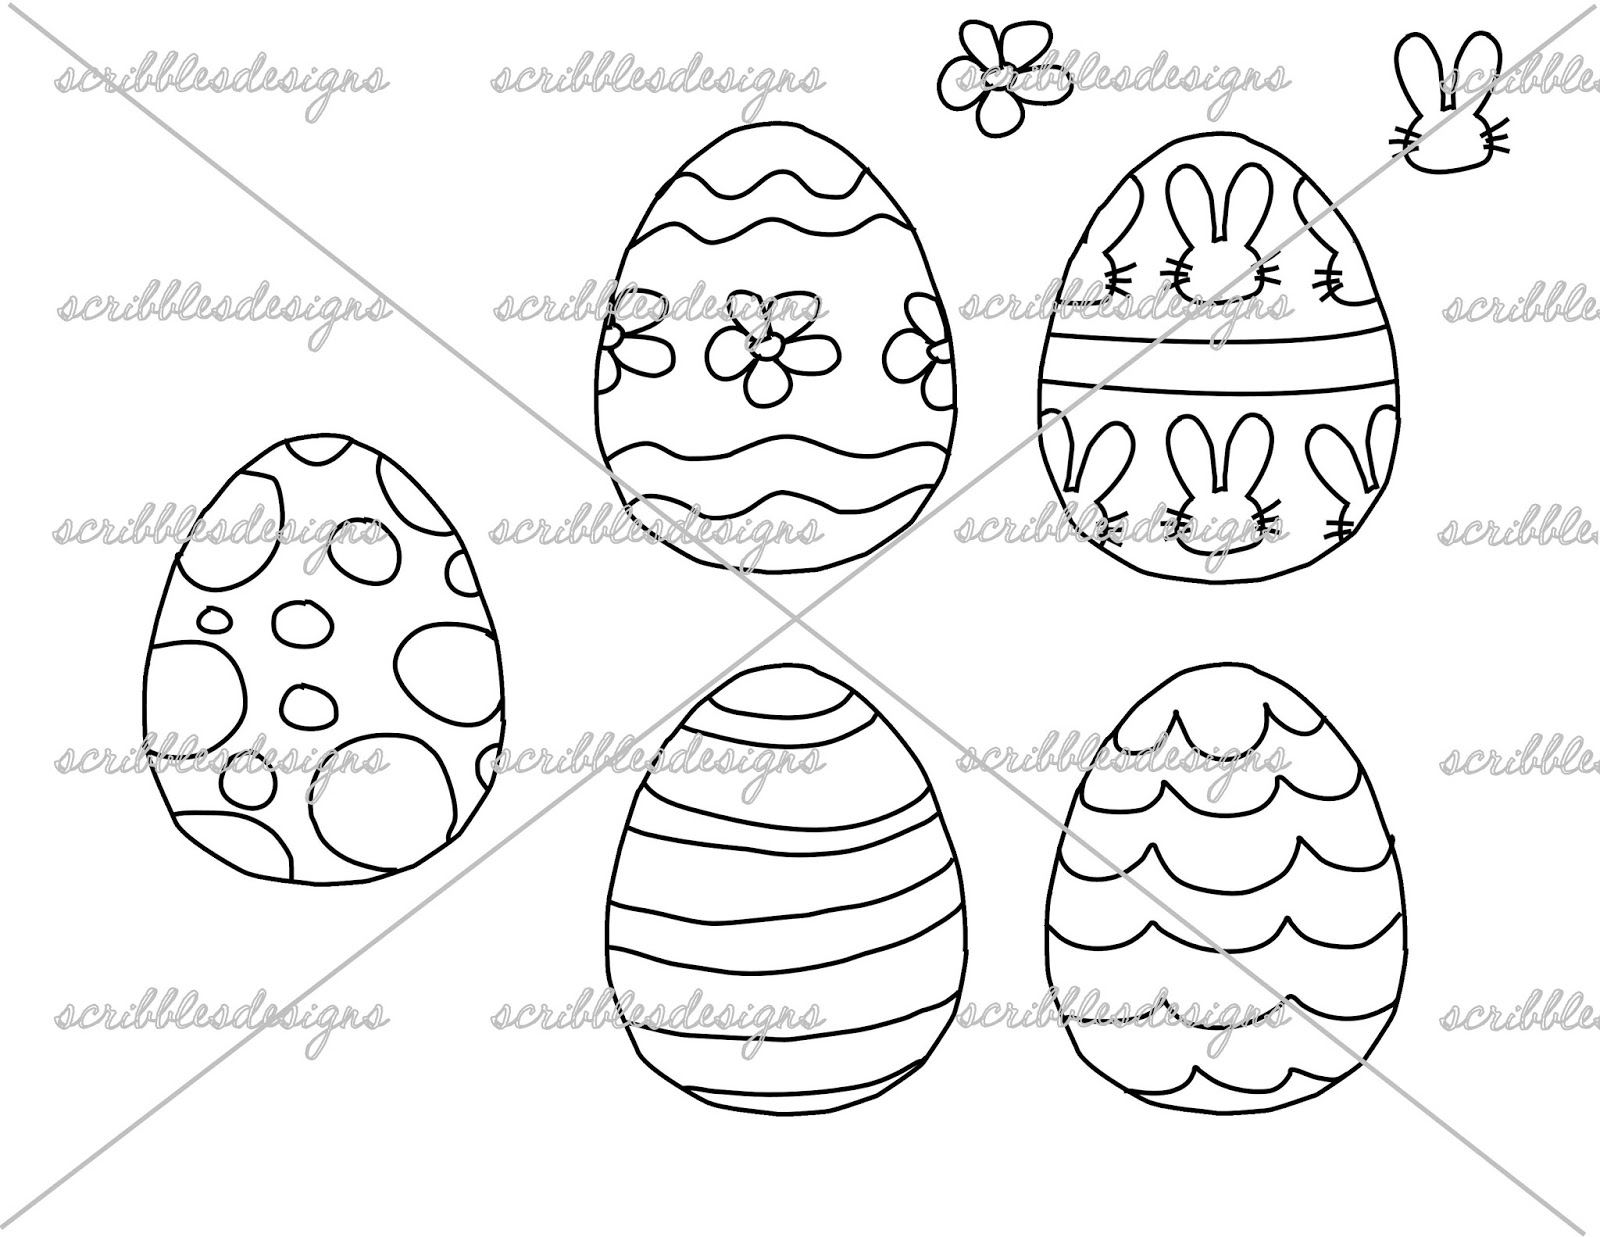 http://buyscribblesdesigns.blogspot.co.uk/2015/03/944-easter-eggs-2-300_12.html